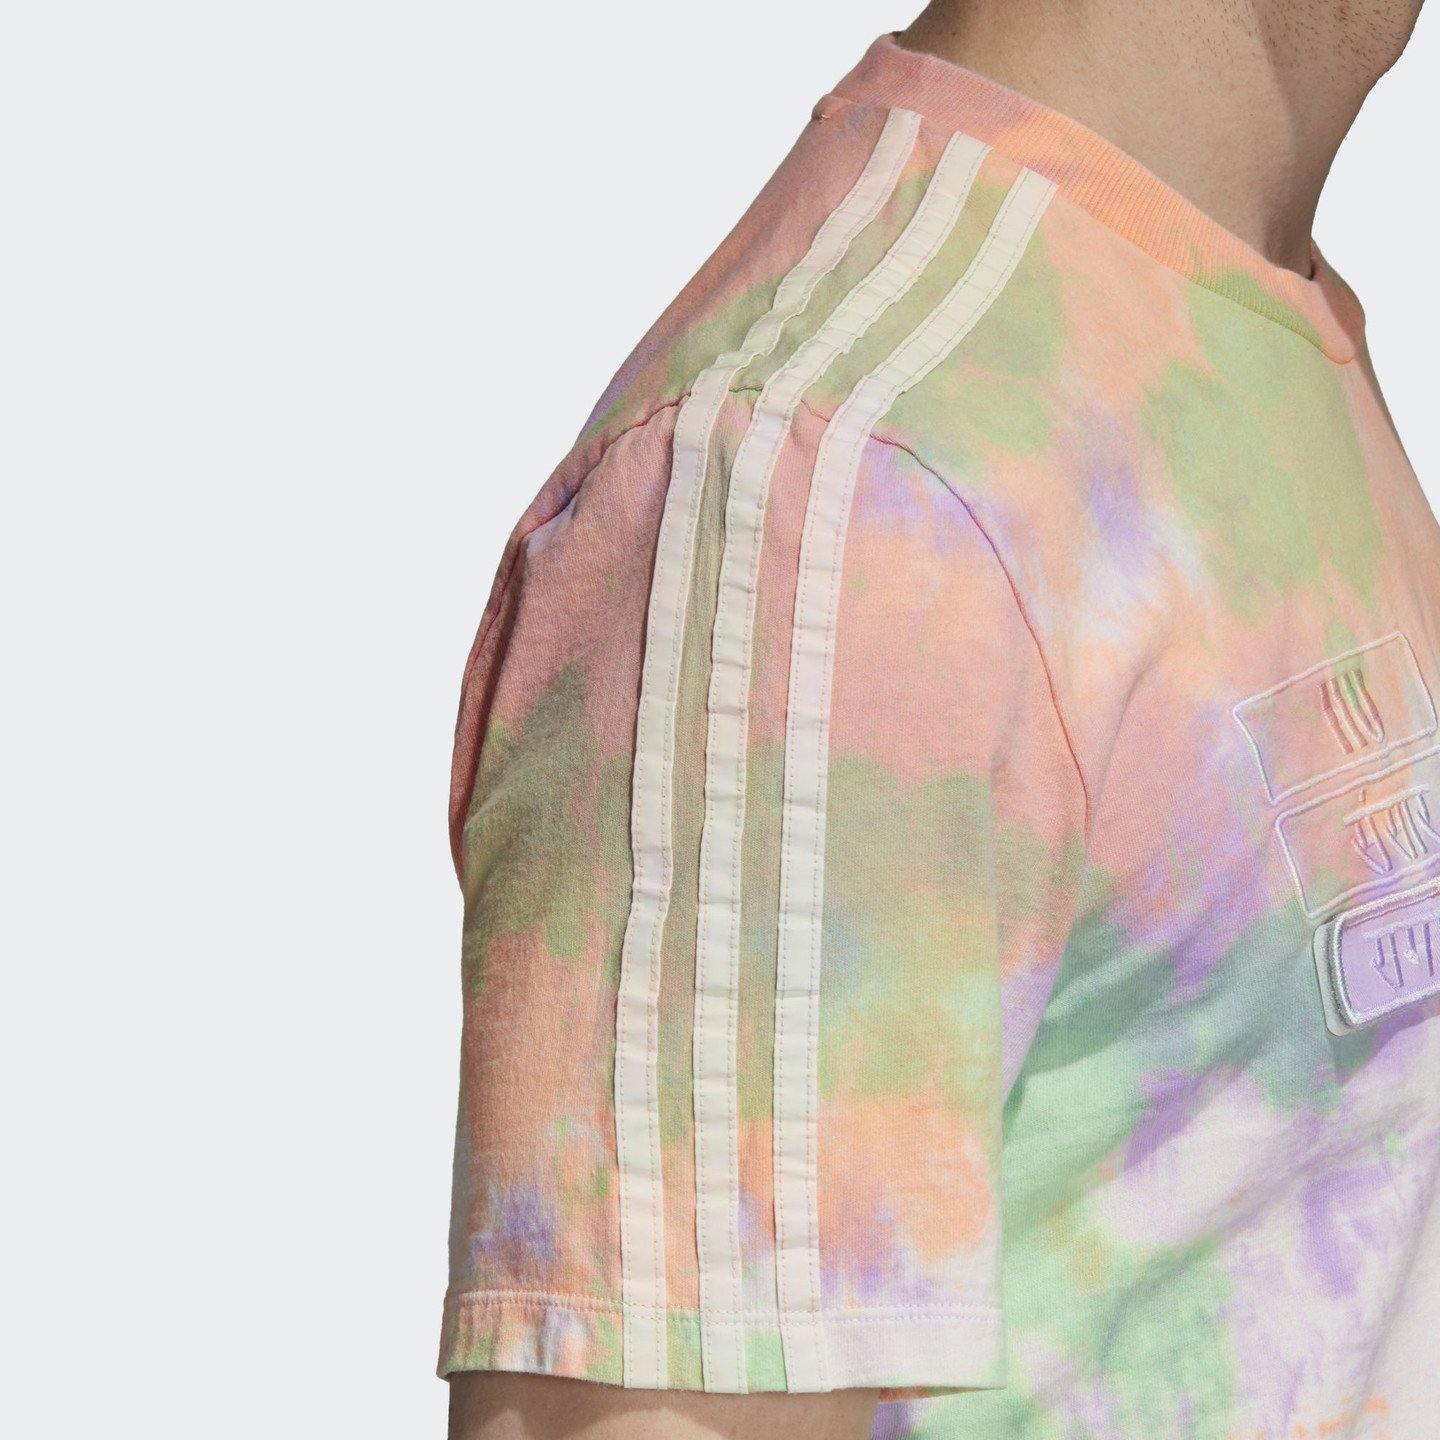 Adidas Pharrell Williams HU Holi T-Shirt 'Powder Dye' Multicolor / White CW9414